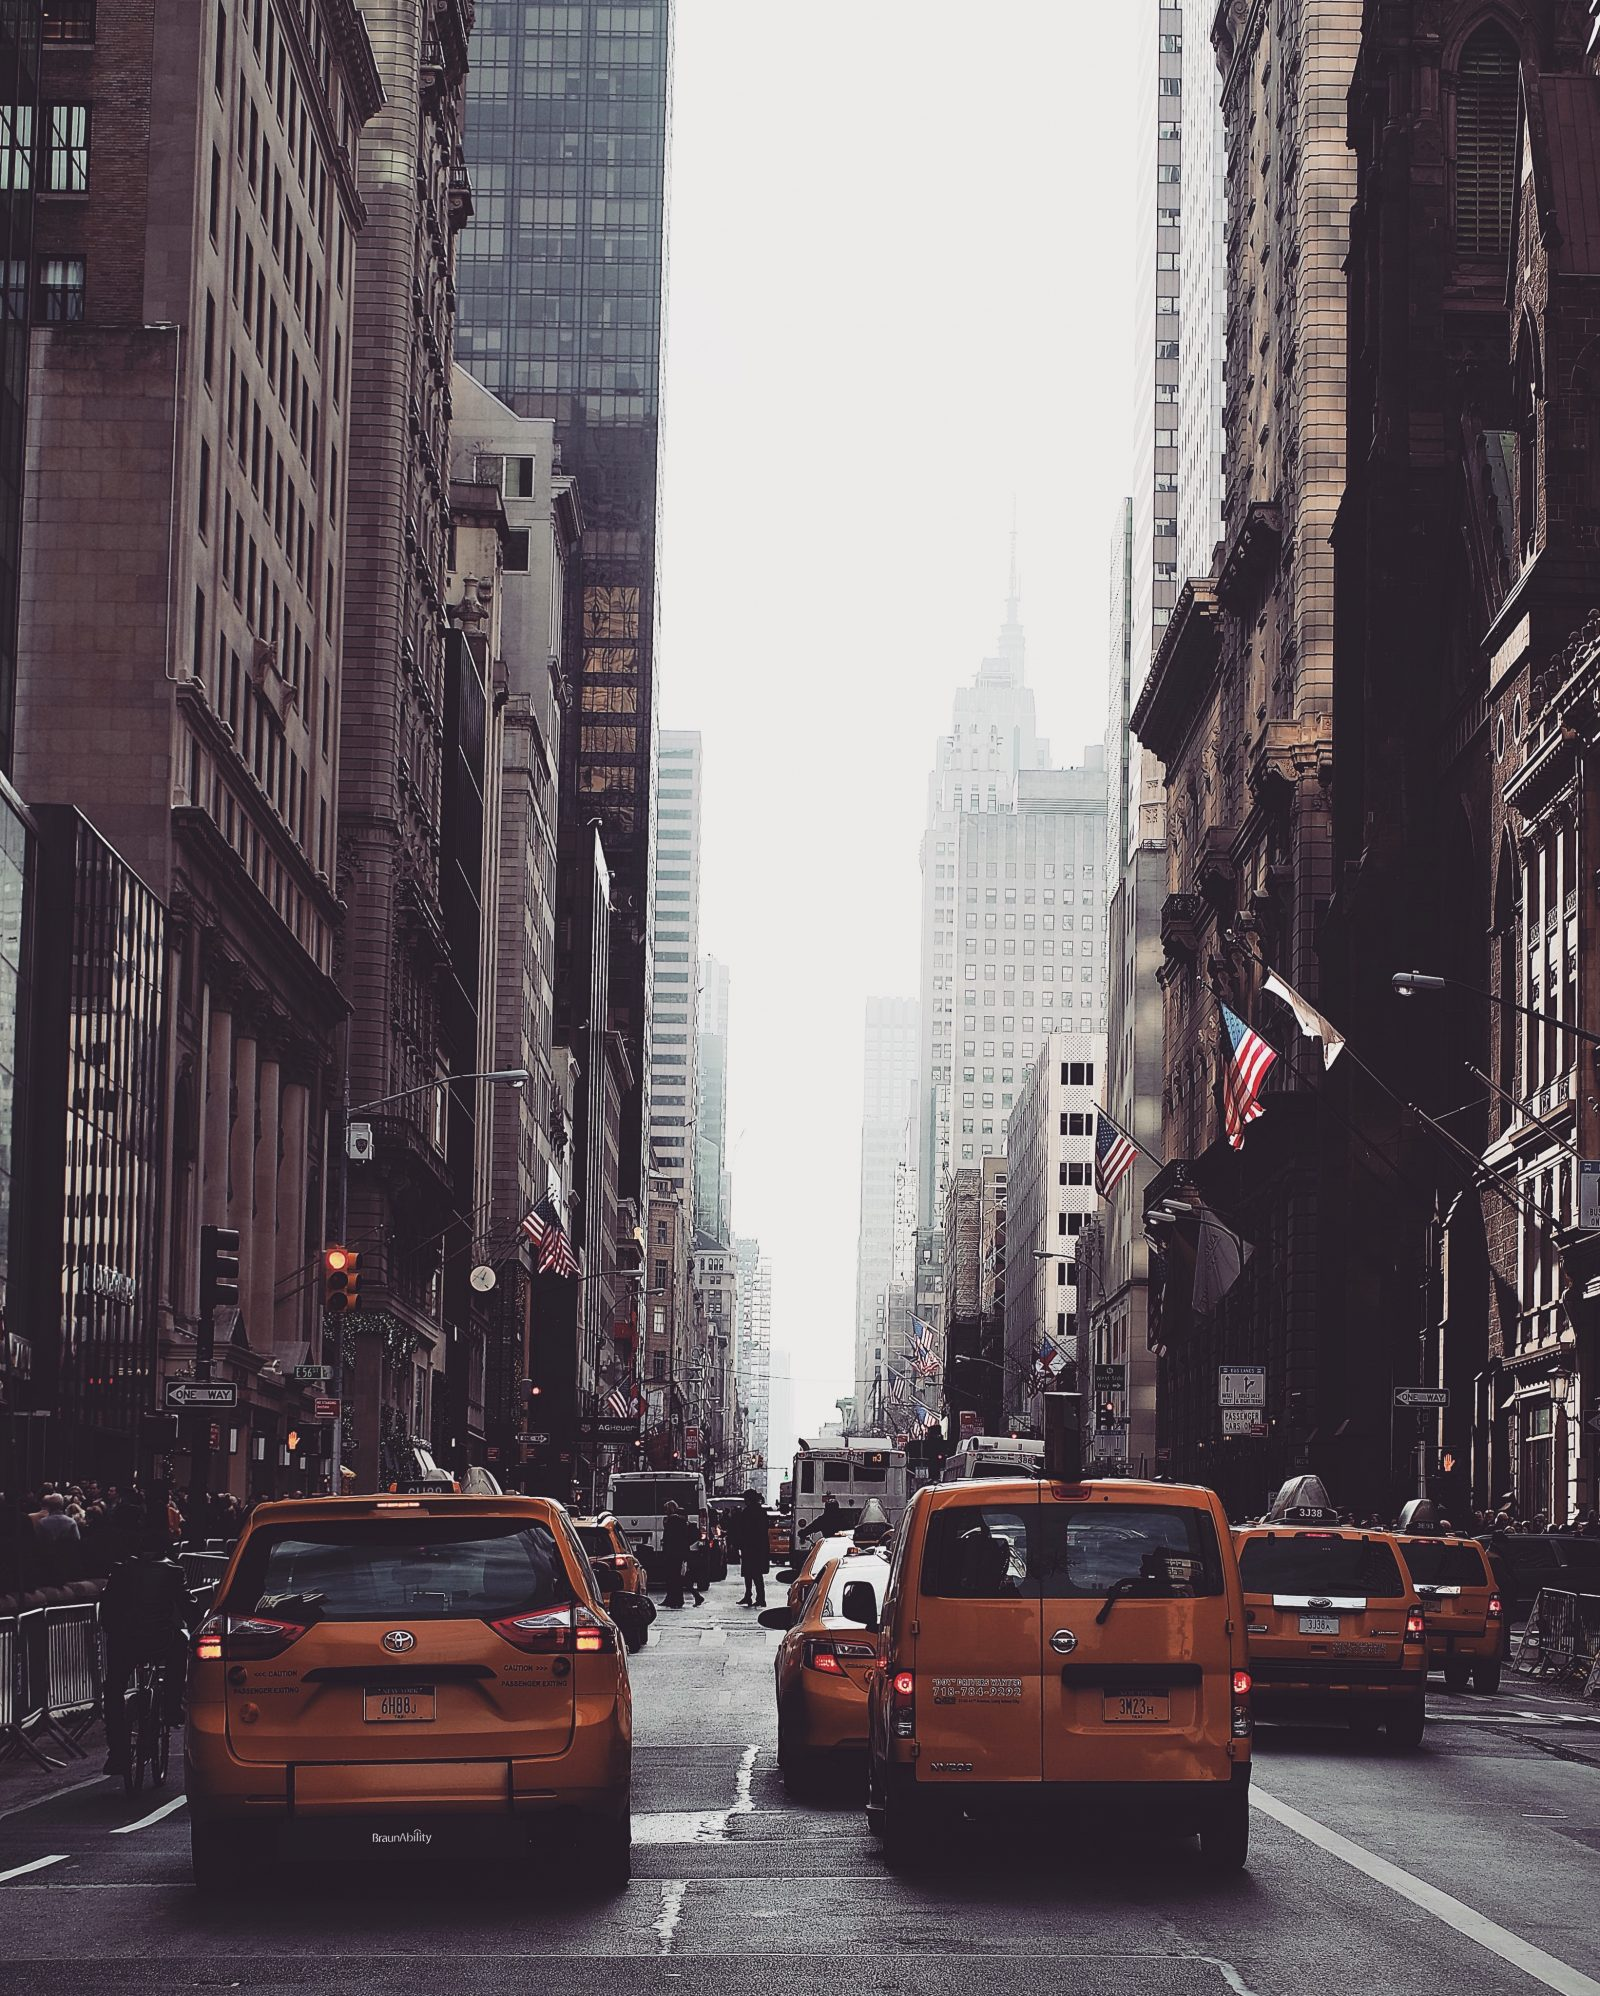 New York in 4 Days - 5th Avenue